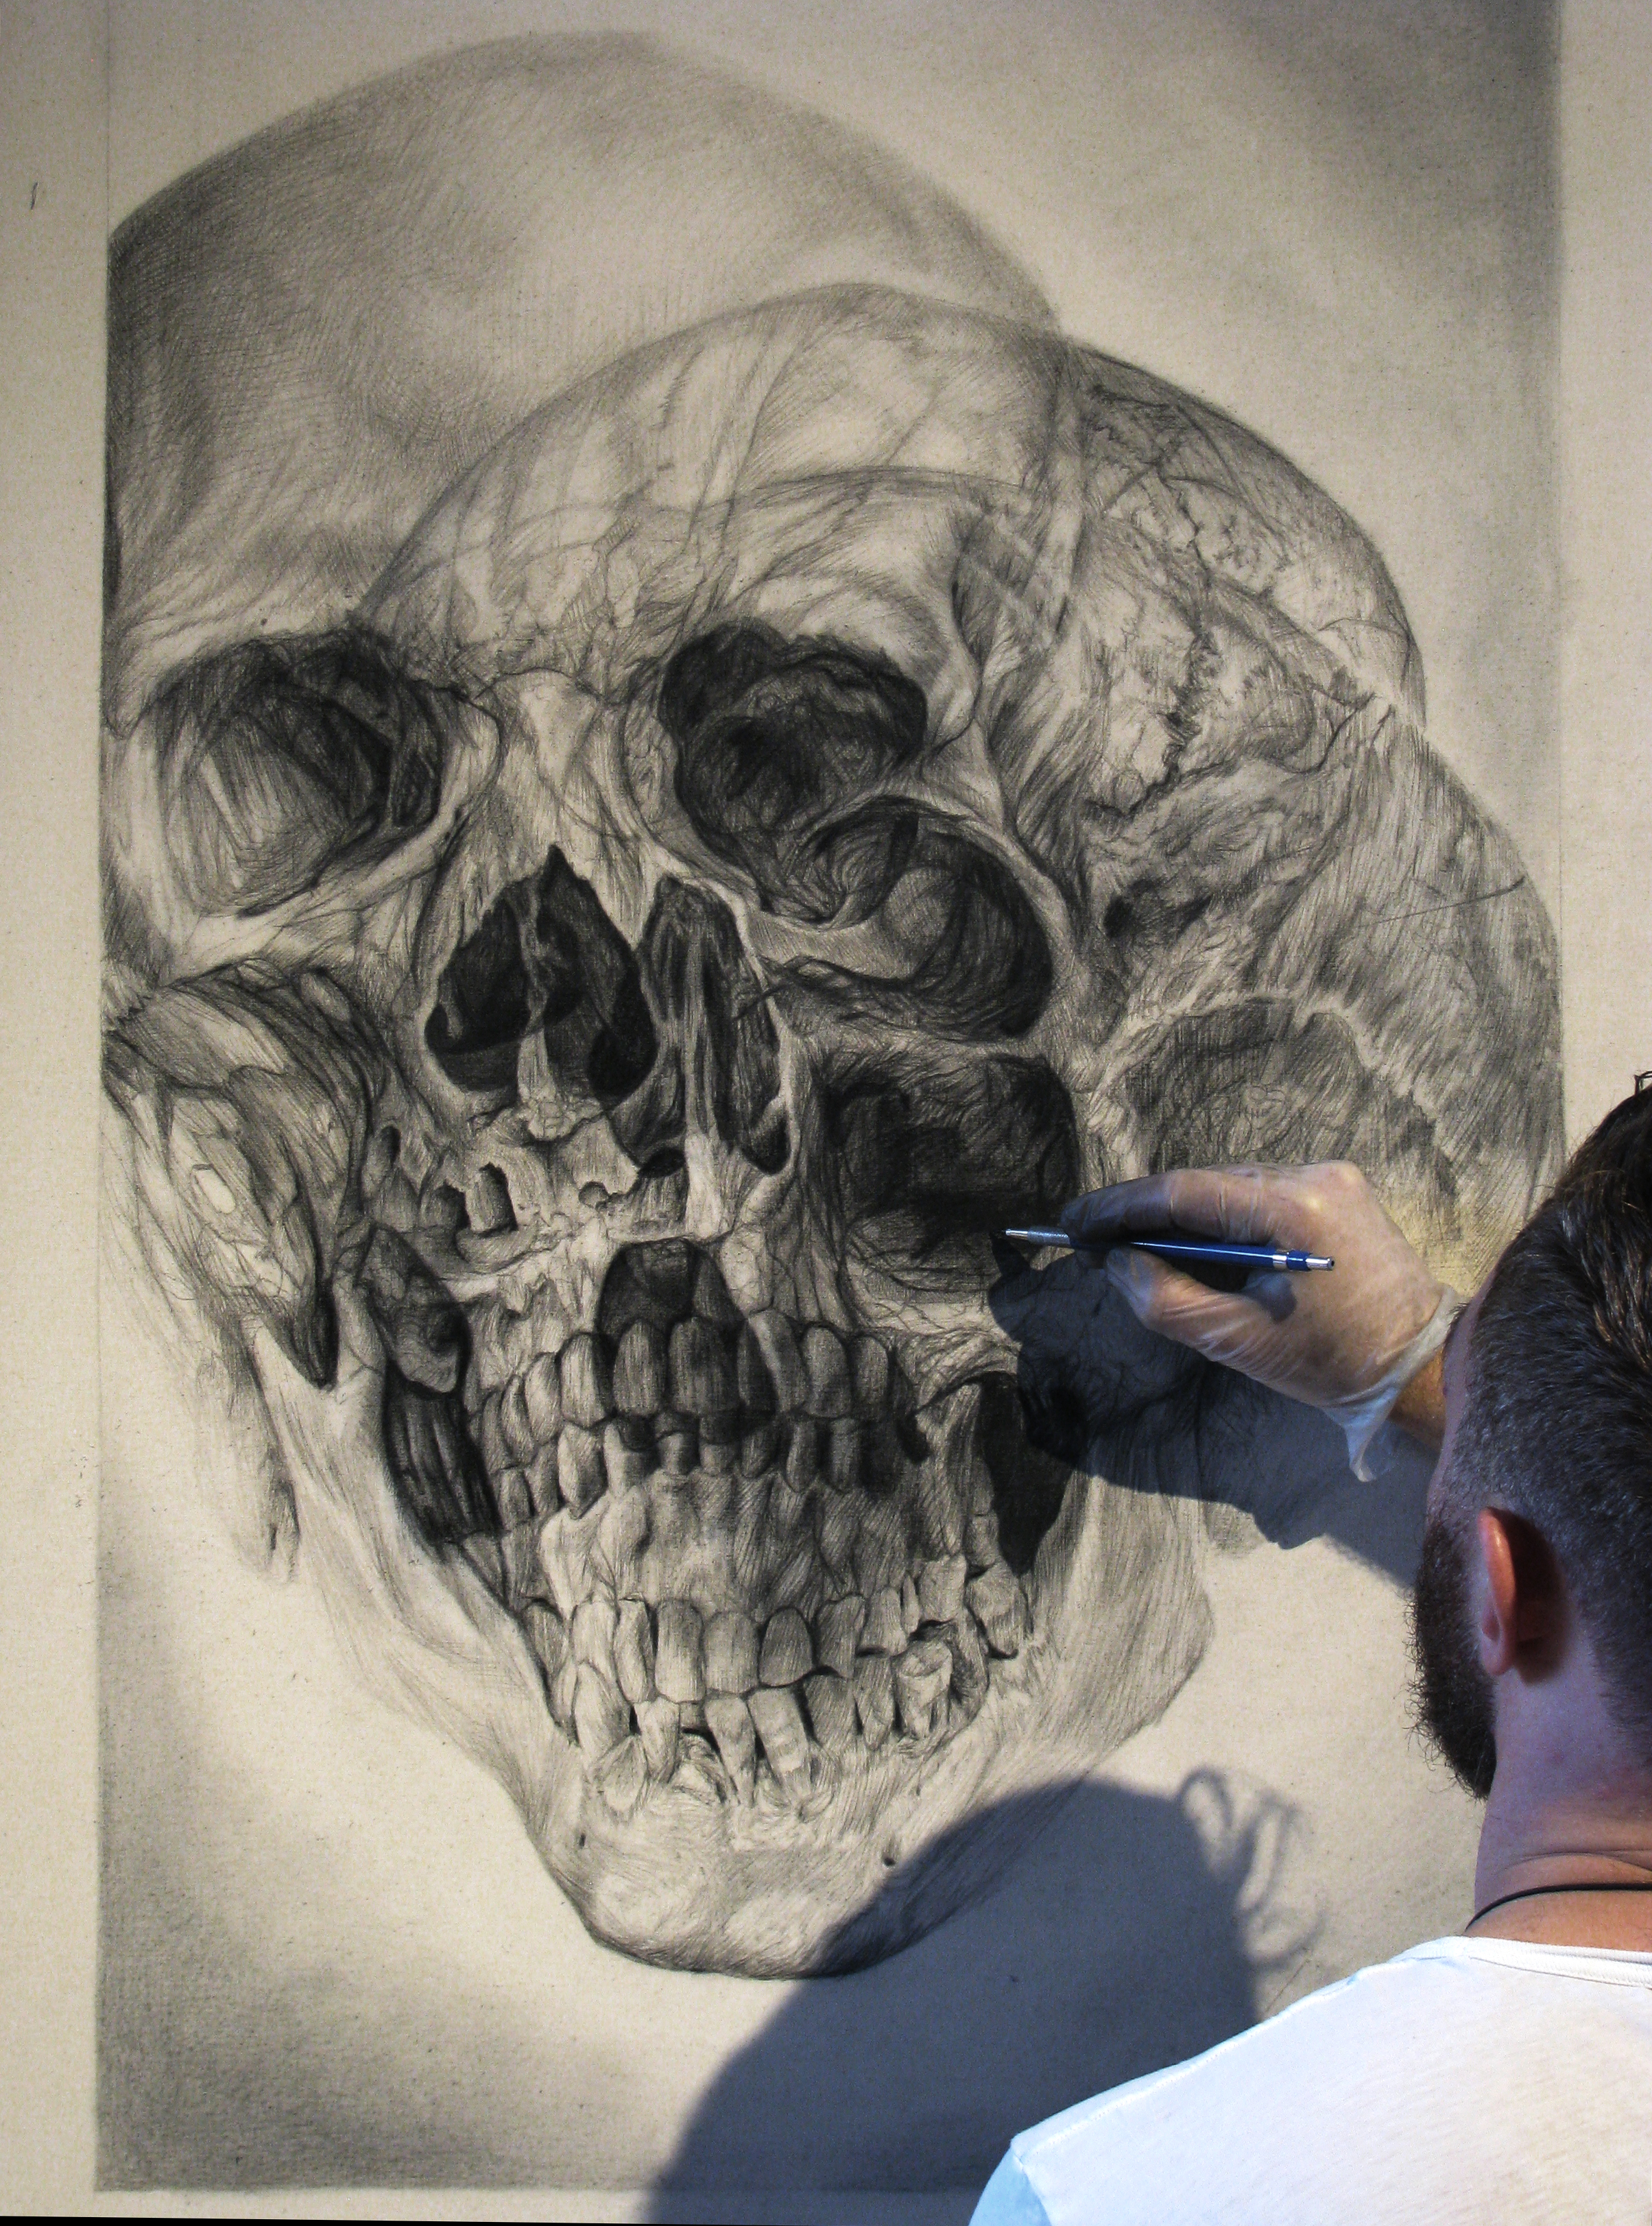 4th Skull detail - Sergio Barrale - pencil on canvas - 40x25in -$2,800.jpg